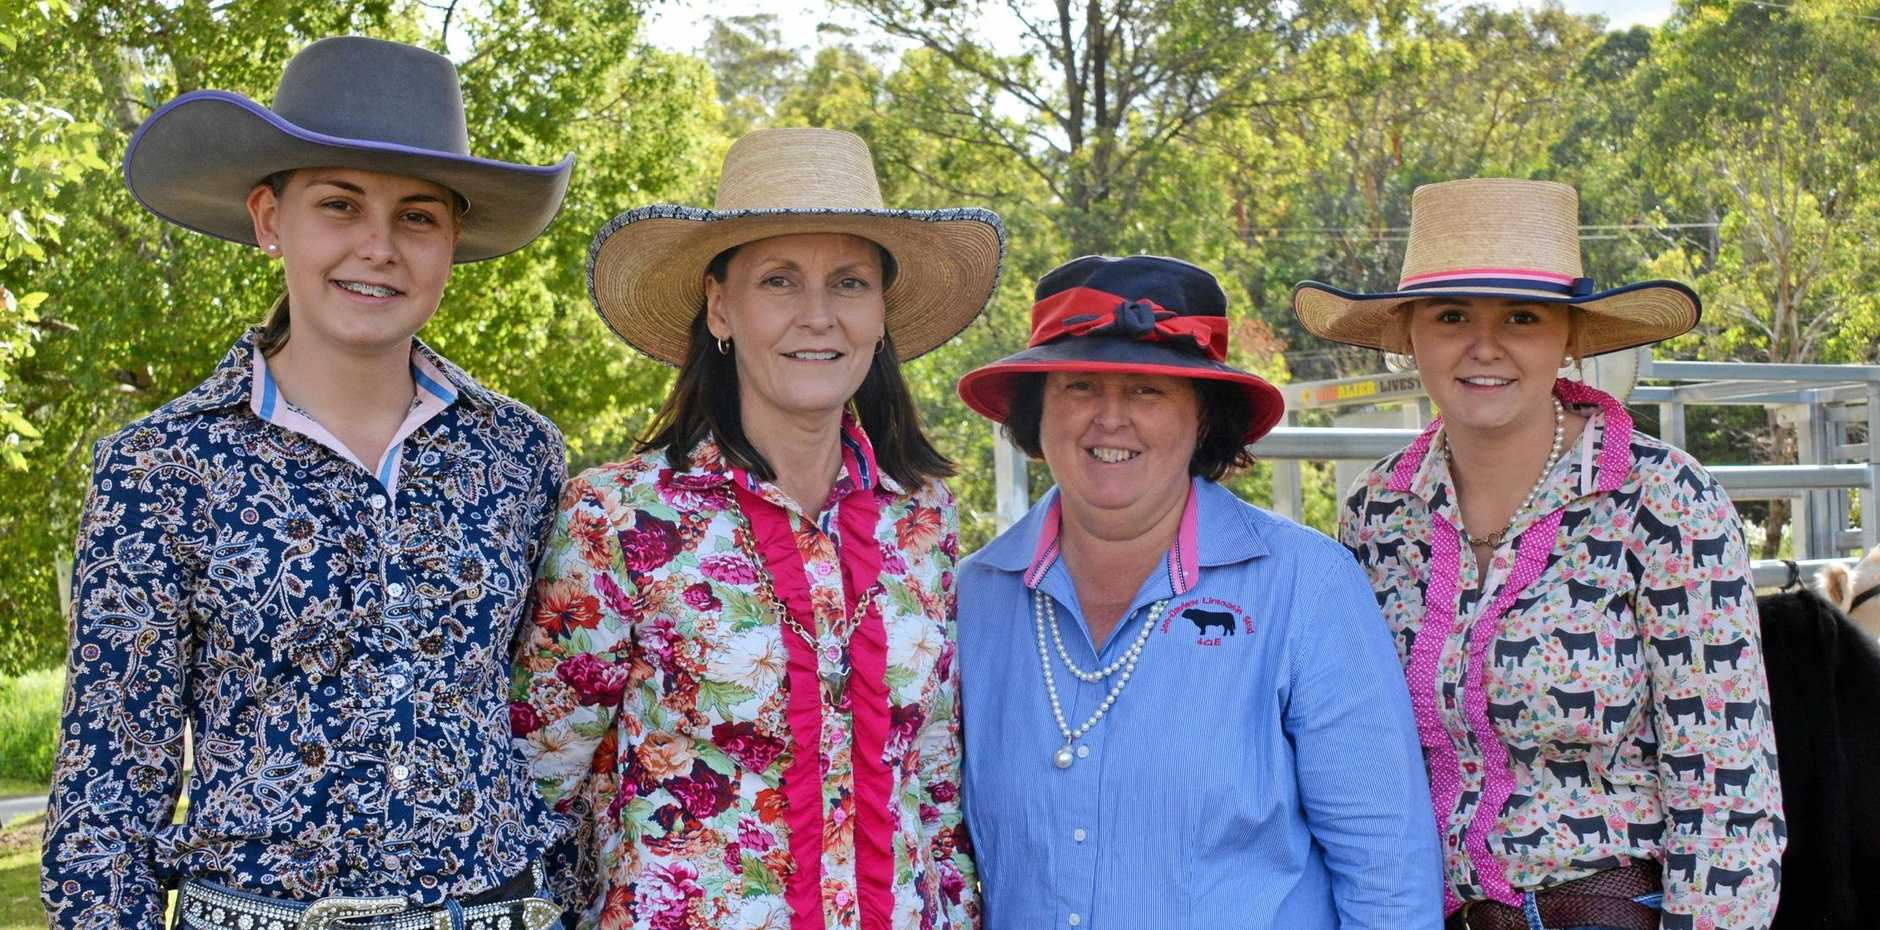 SHOWTIME: Jenny Evans, Georgie, Karen, and Chloe Plowman enjoy a big day of cattle showing.